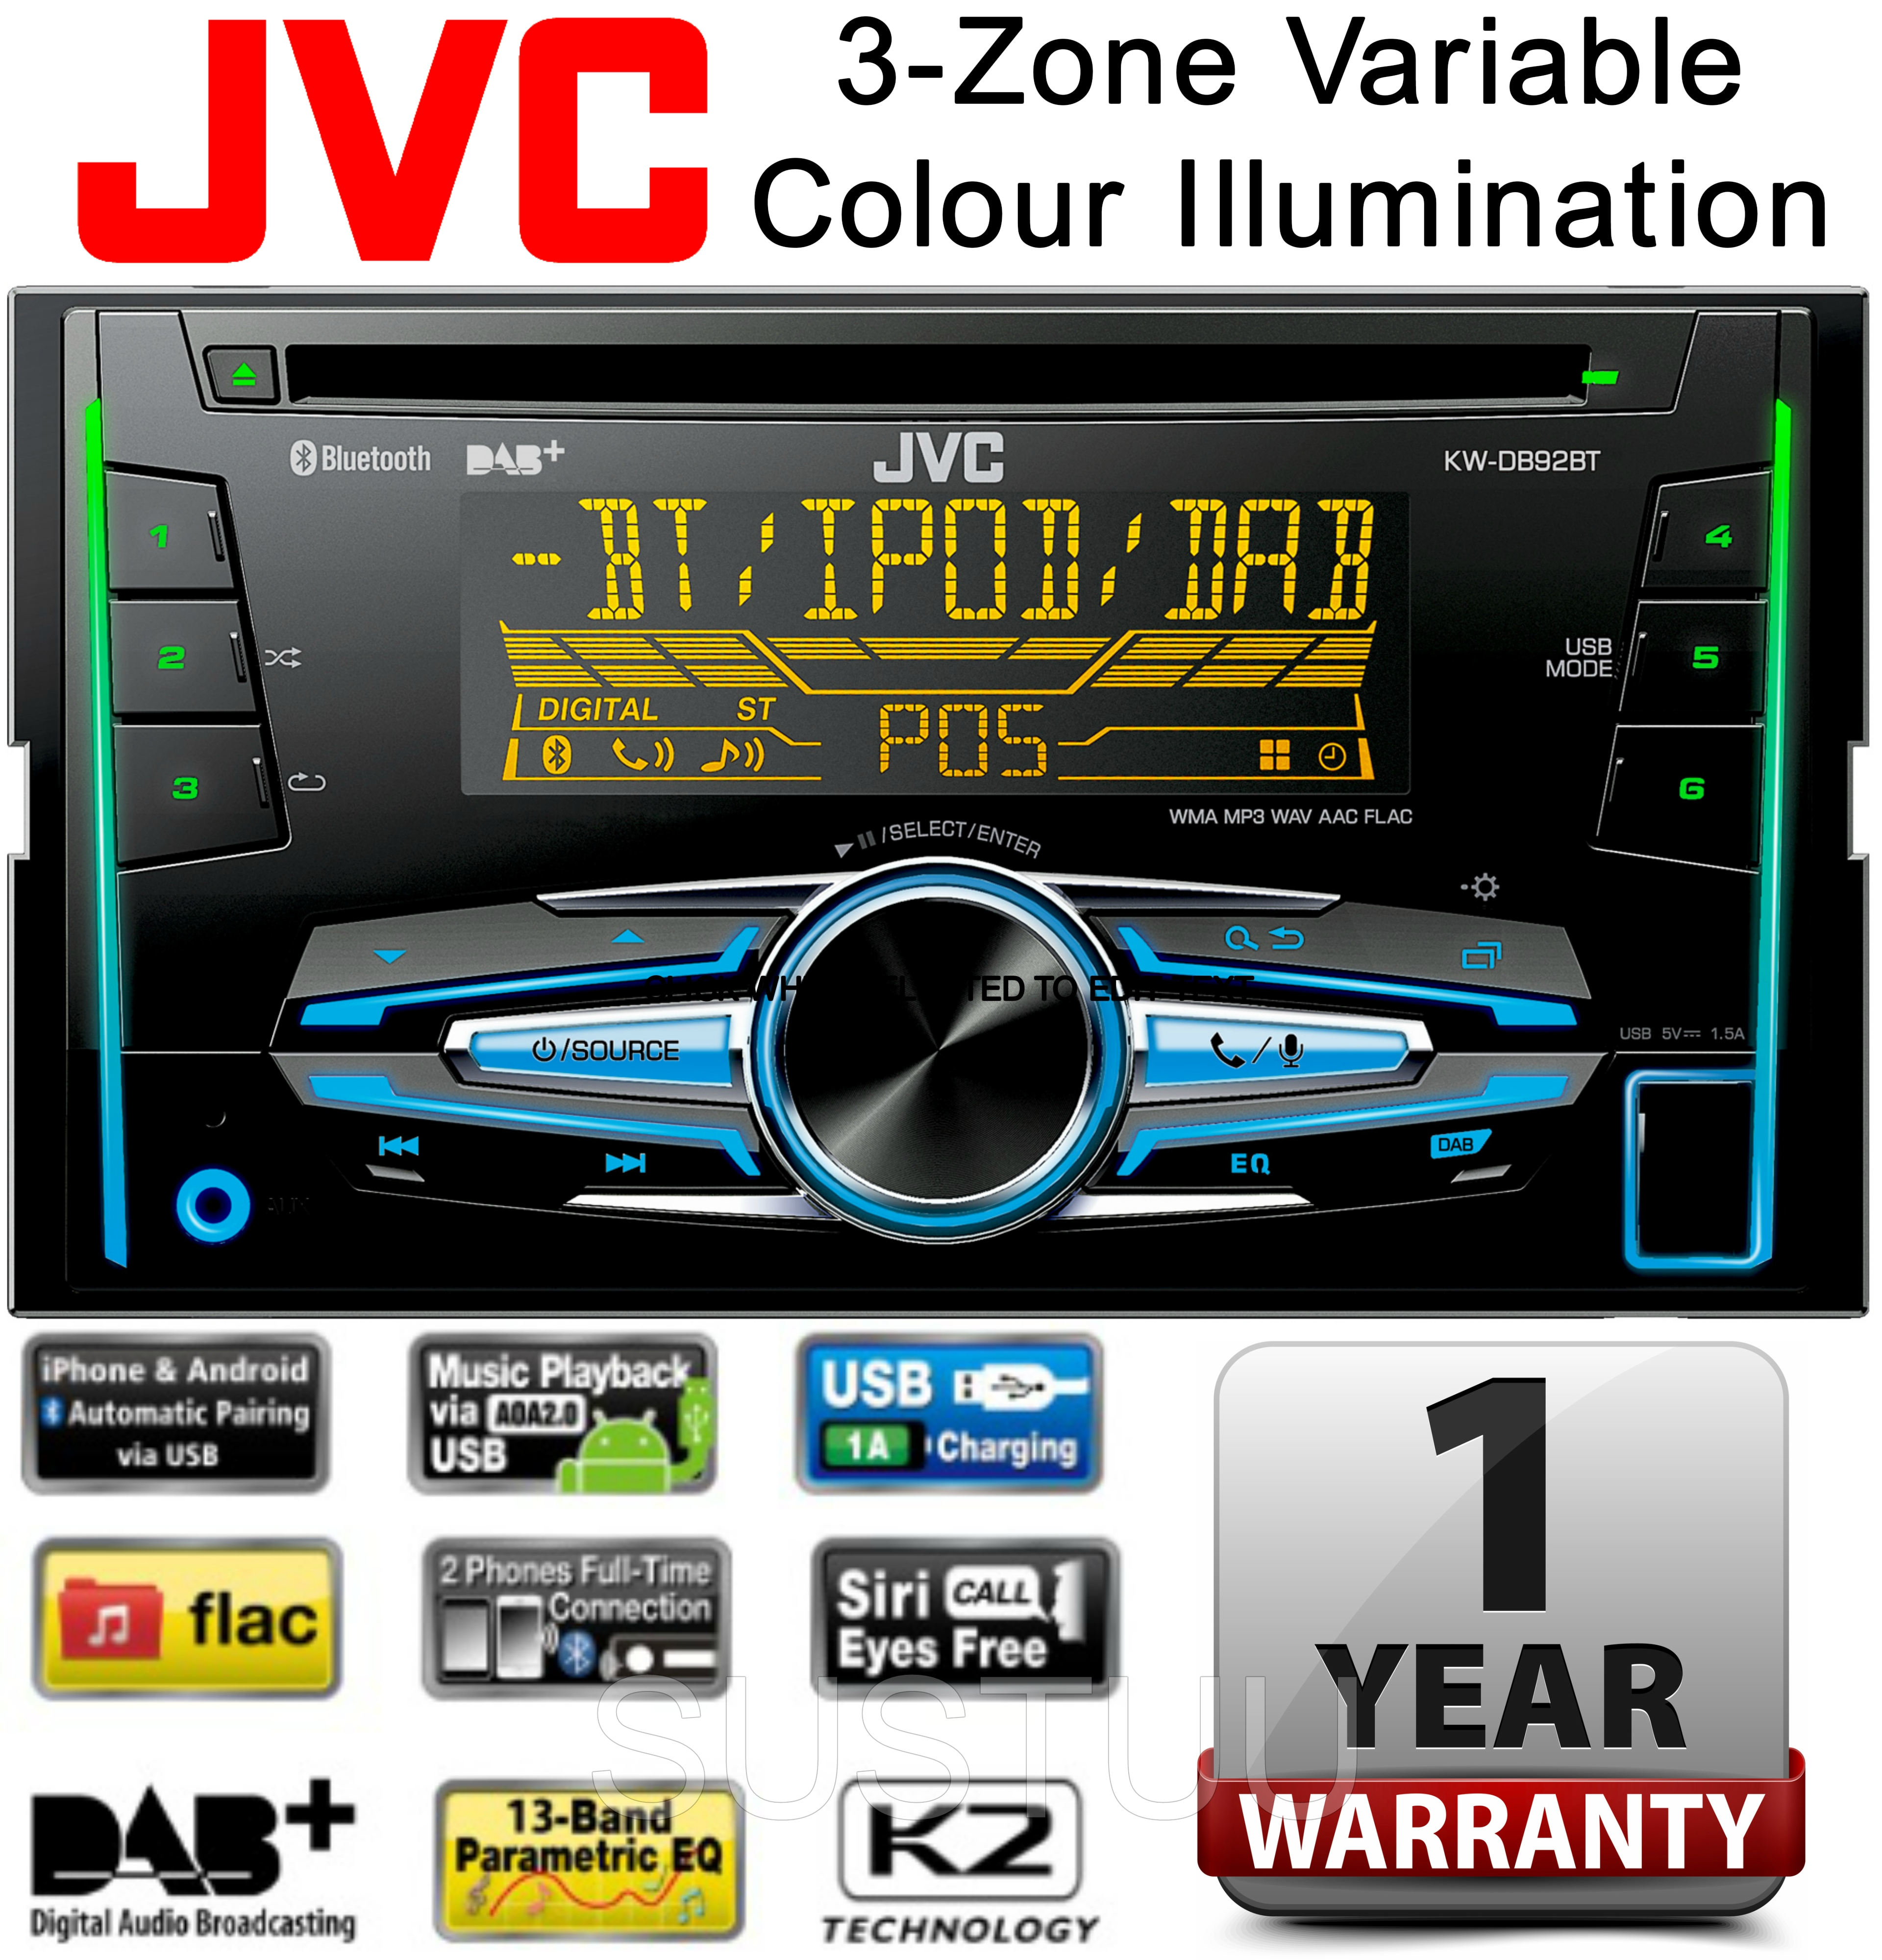 jvc kw db92bt car stereo 2 double din radio usb aux dab. Black Bedroom Furniture Sets. Home Design Ideas